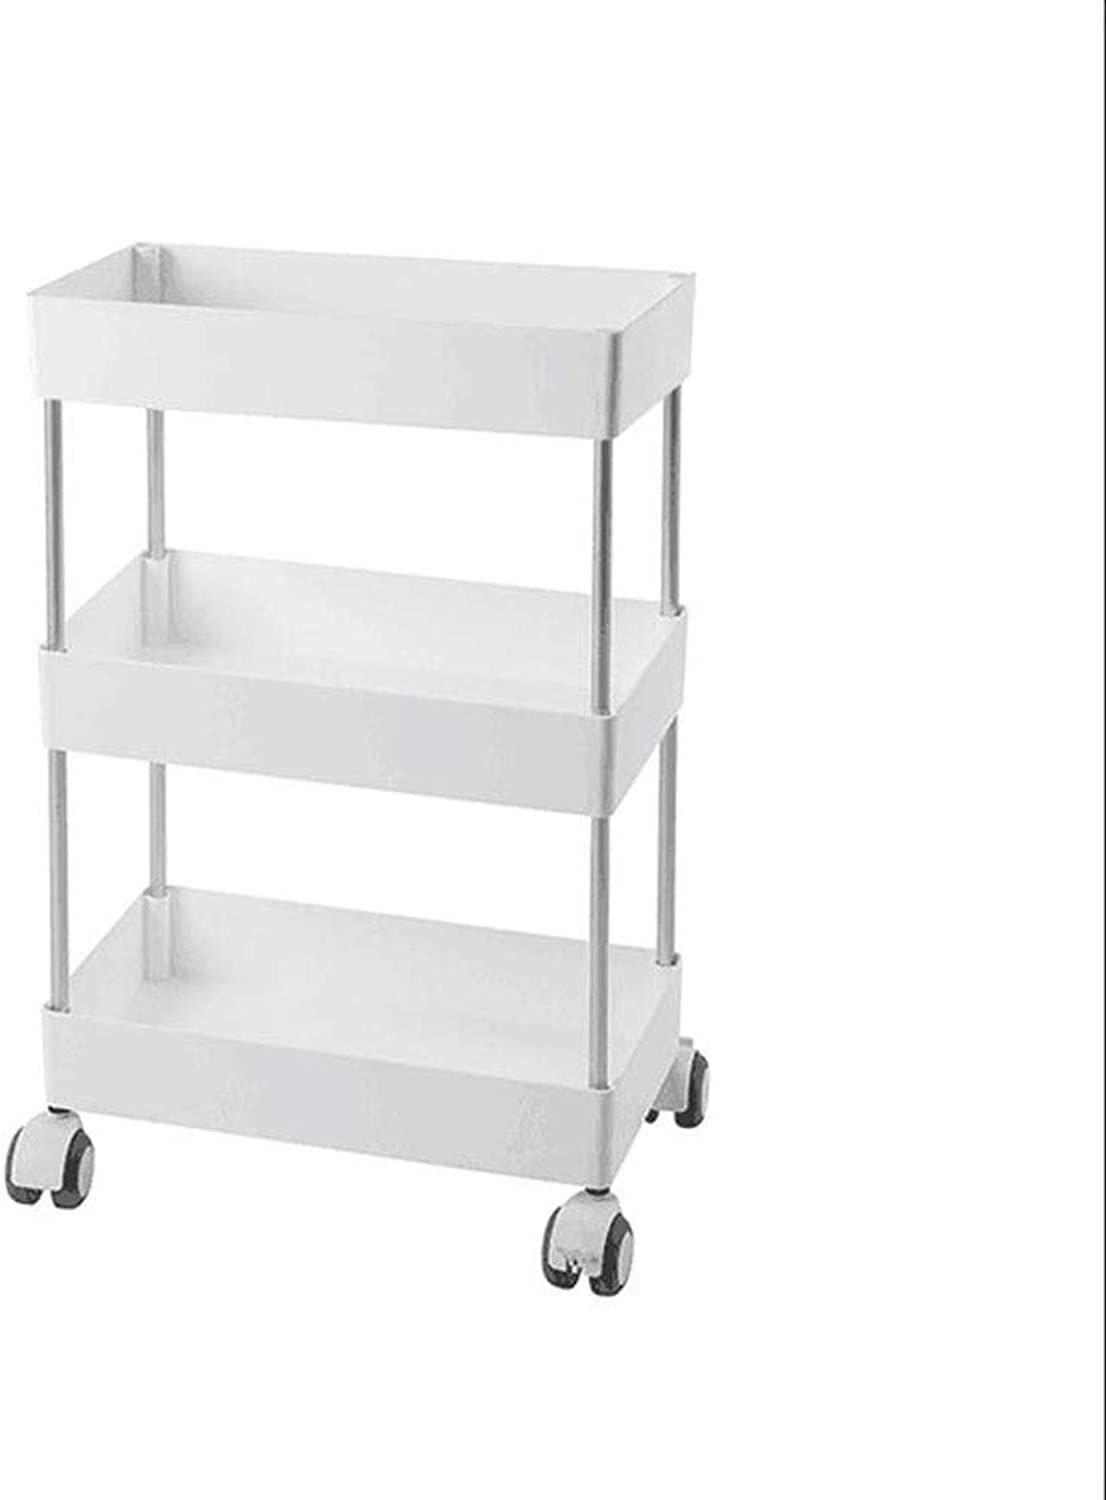 JCAFA Shelves Movable Trolley Kitchen Shelf Floor Multi-Layer Storage Rack Bathroom Bedroom Universal Wheel Storage Shelf, 2 Sizes (color   White, Size   3 Layers 8.77  15.86  25.51in)